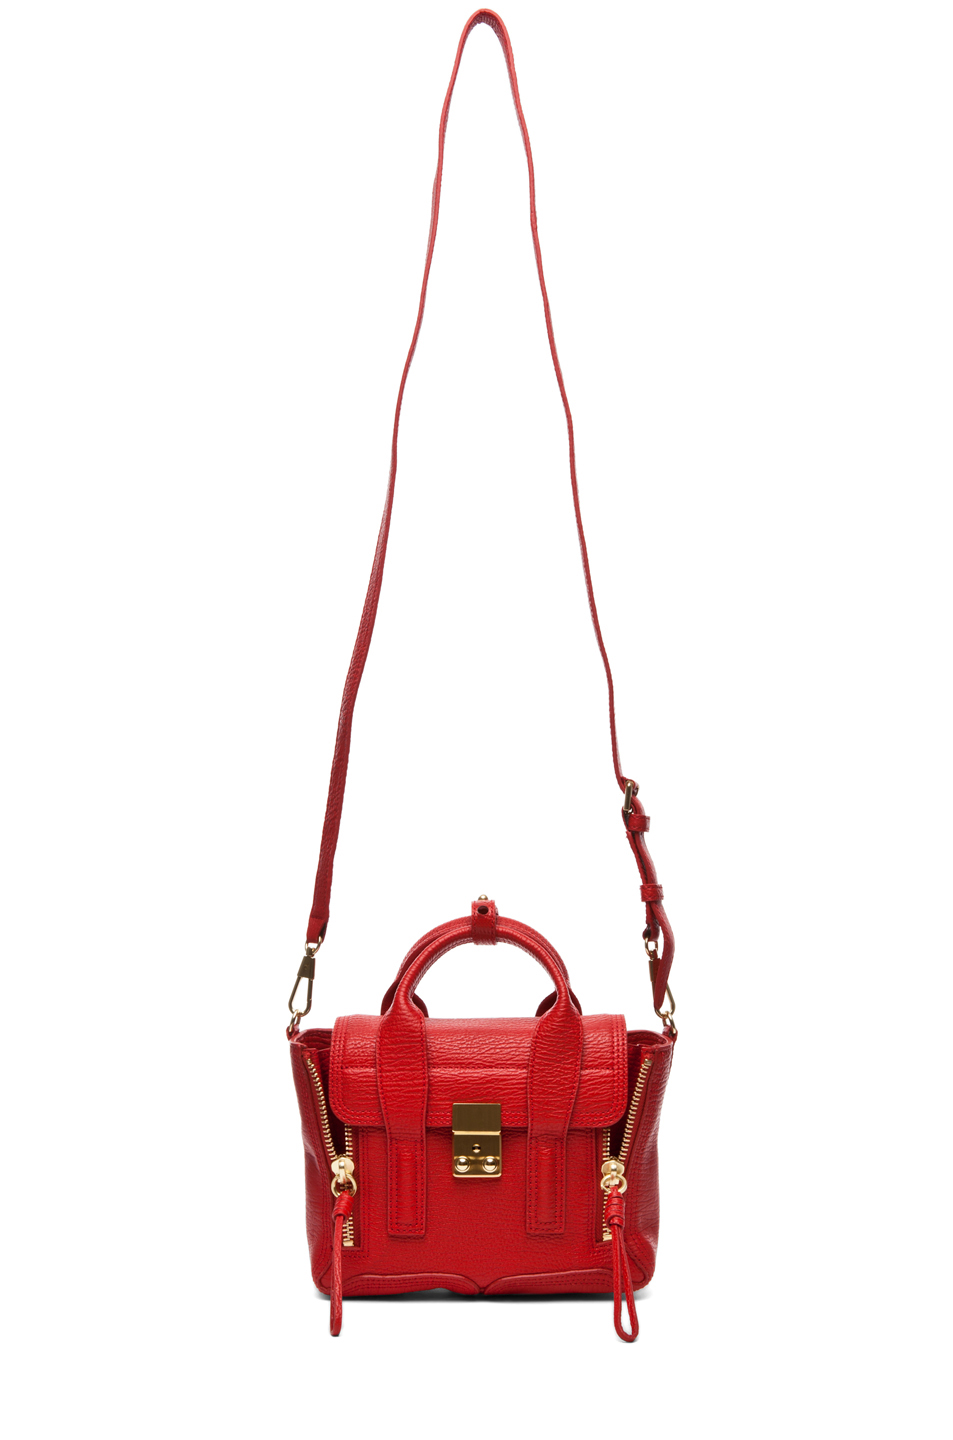 3.1 phillip lim|Mini Pashli Satchel in Red